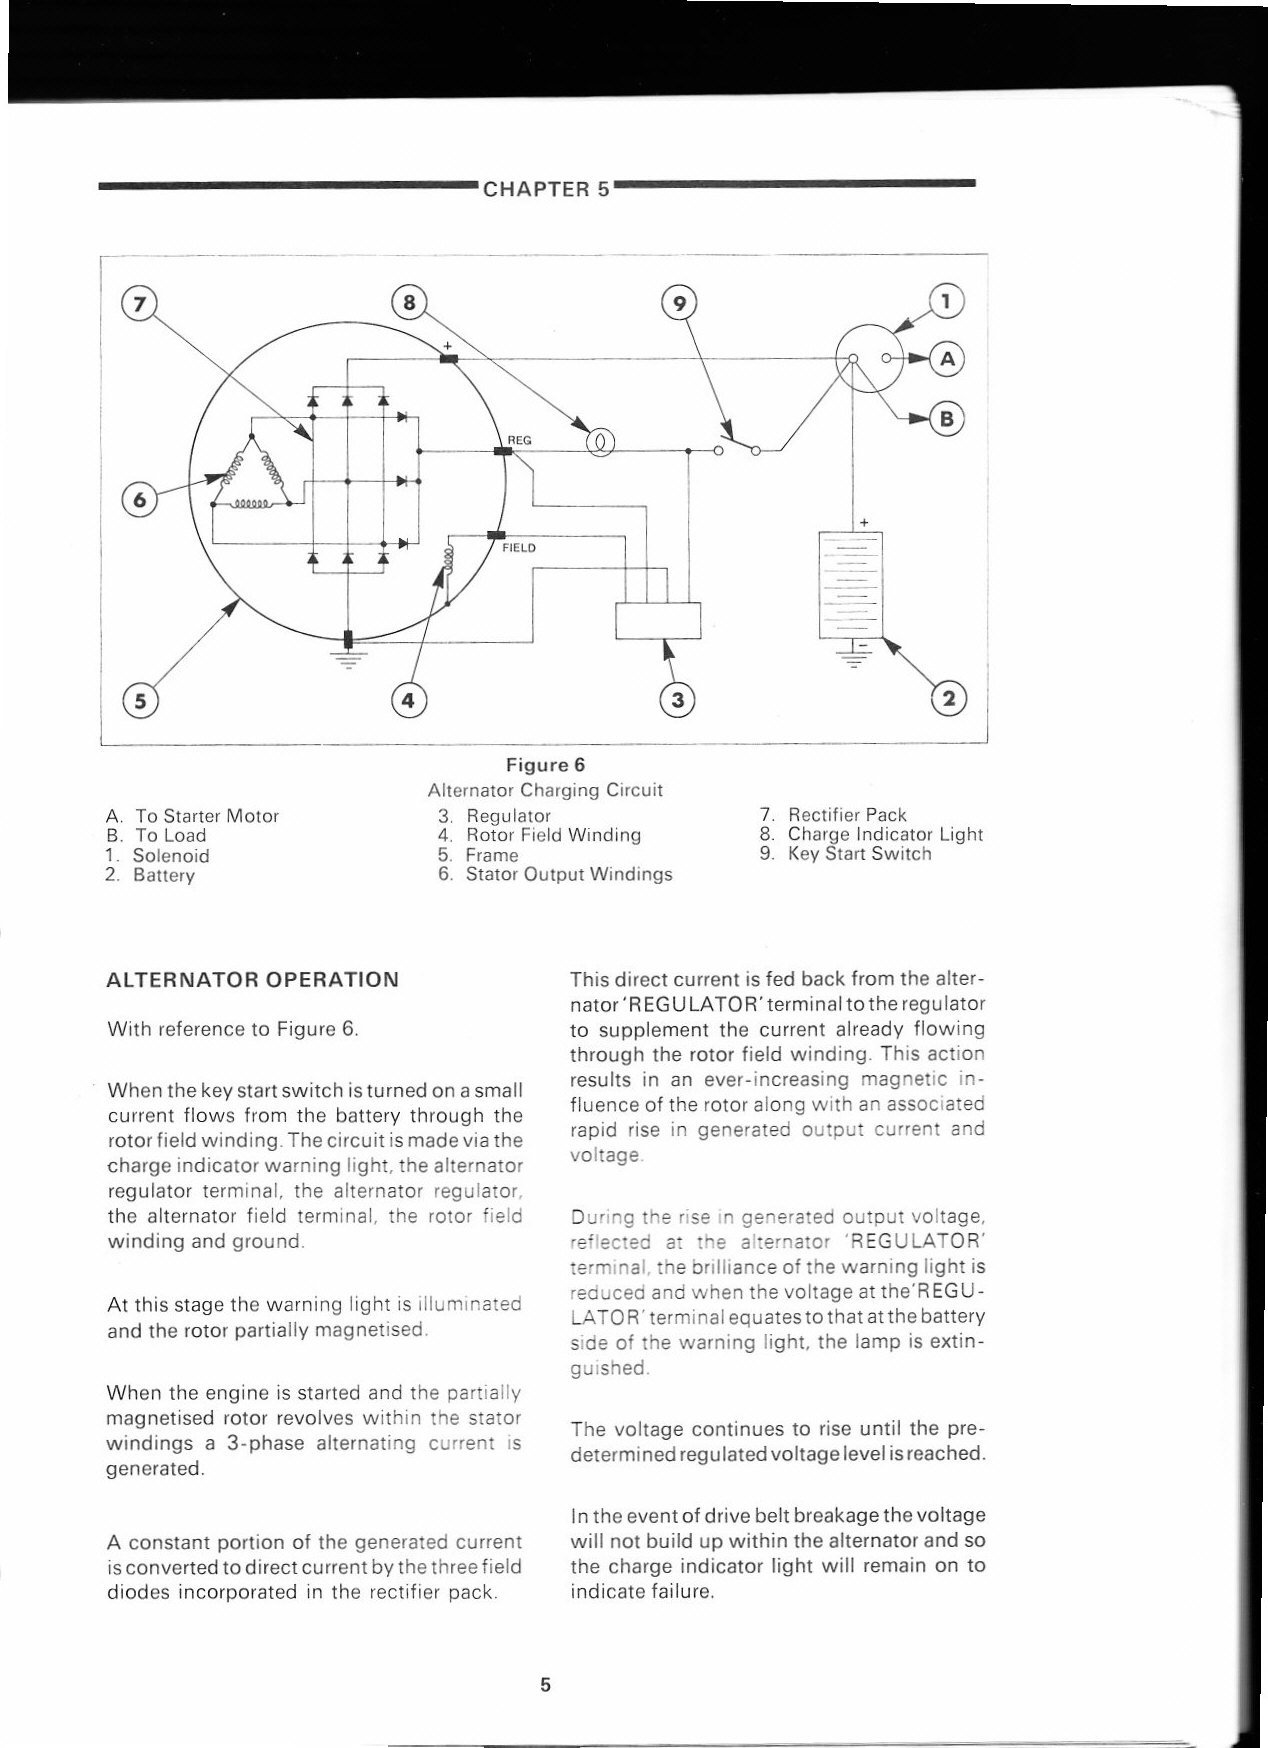 Ford Tractor Charging System Wiring Diagram on 3910 ford tractor parts, 3910 ford tractor oil filter, ford 555 backhoe wiring diagram, 3910 ford tractor shop manual, 3910 ford tractor owners manual, ford 9n tractor diagram, ford 8n electrical diagram, ford 2000 tractor diagram, ford tractor ignition diagram, ford 5000 transmission diagram, ford tractor hydraulic diagram, ford tractor starter diagram, ford 3910 electrical diagram, ford tractor carburetor diagram, ford 8n pto diagram, 3910 ford tractor tires, ford 3600 tractor steering diagram, ford 3600 diesel tractor diagram, ford 3910 parts diagram, ford tractor electrical diagram,